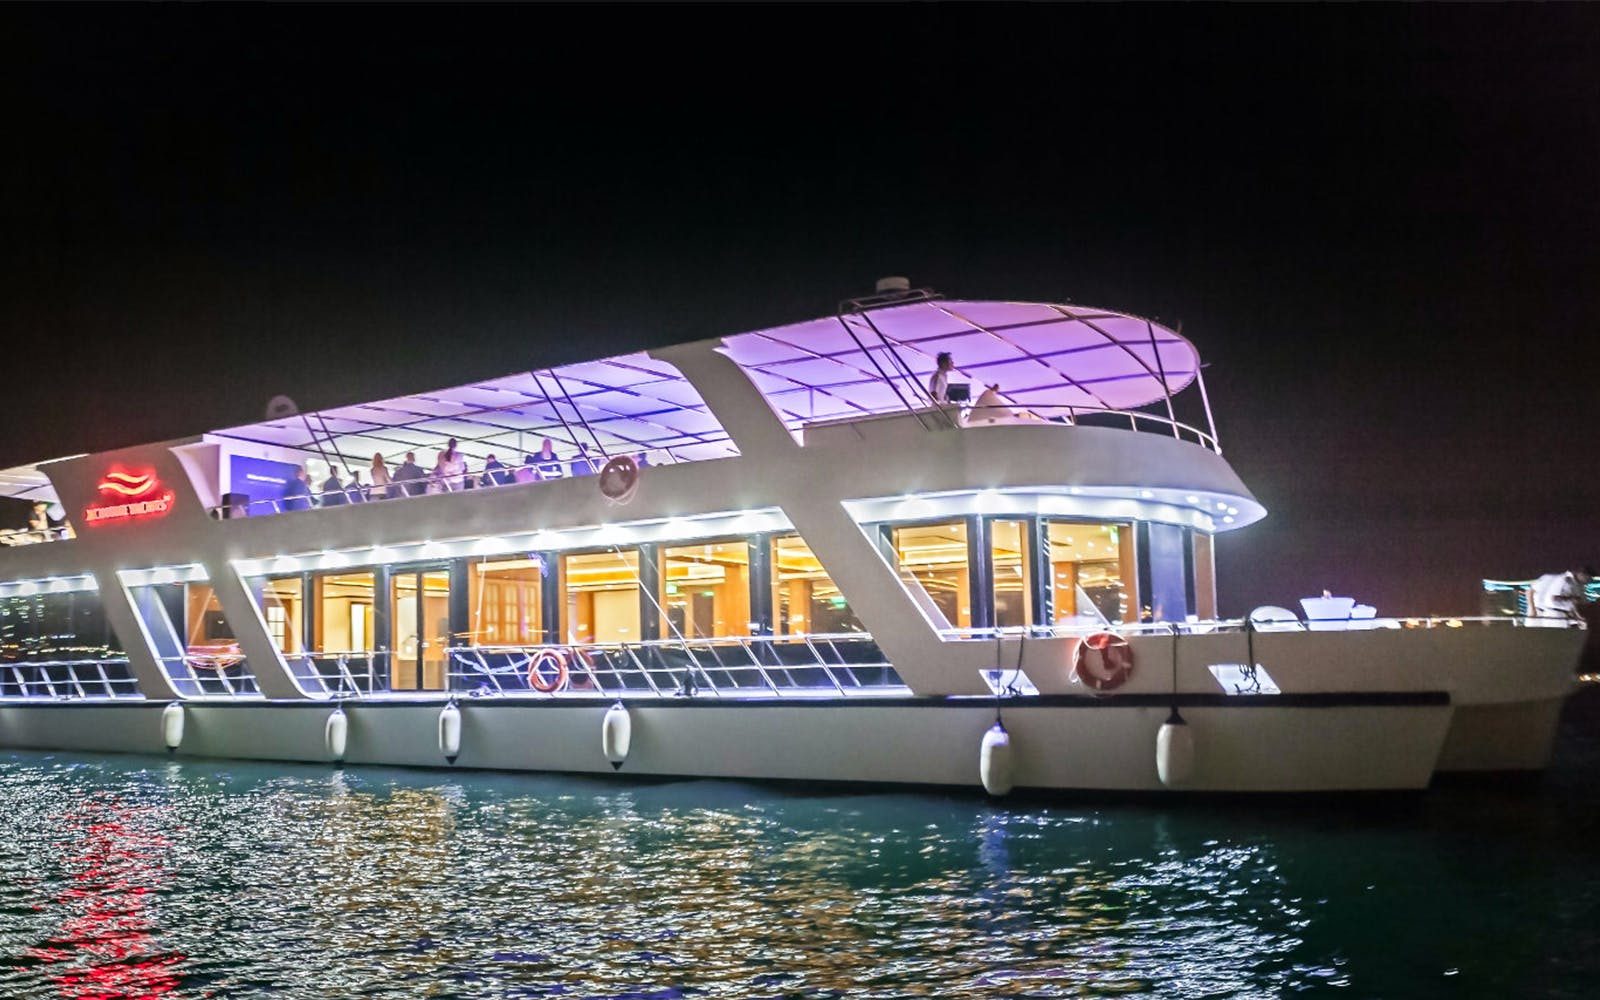 Dinner Cruise: 5 Star Dubai Marina Dinner Cruise with live Saxophonist